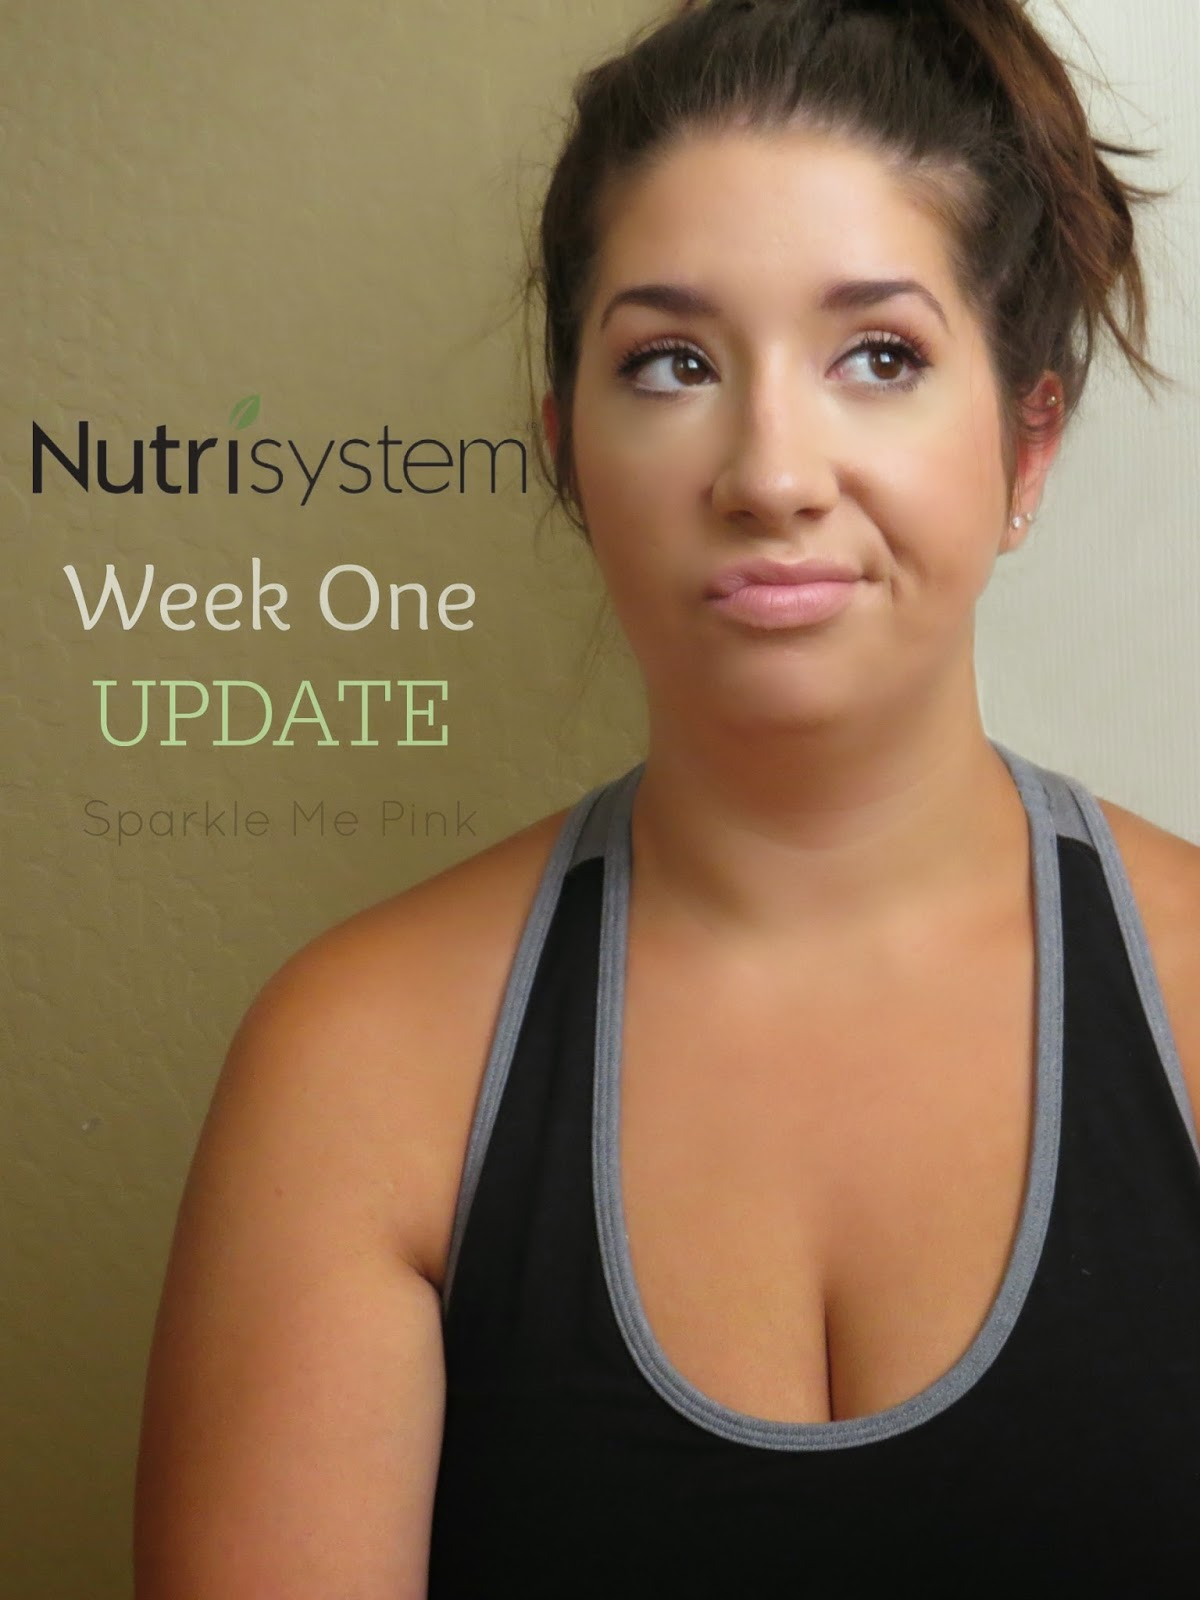 Sparkle me pink the truth about nutrisystem fast5 week one update the truth about nutrisystem fast5 week one update solutioingenieria Gallery